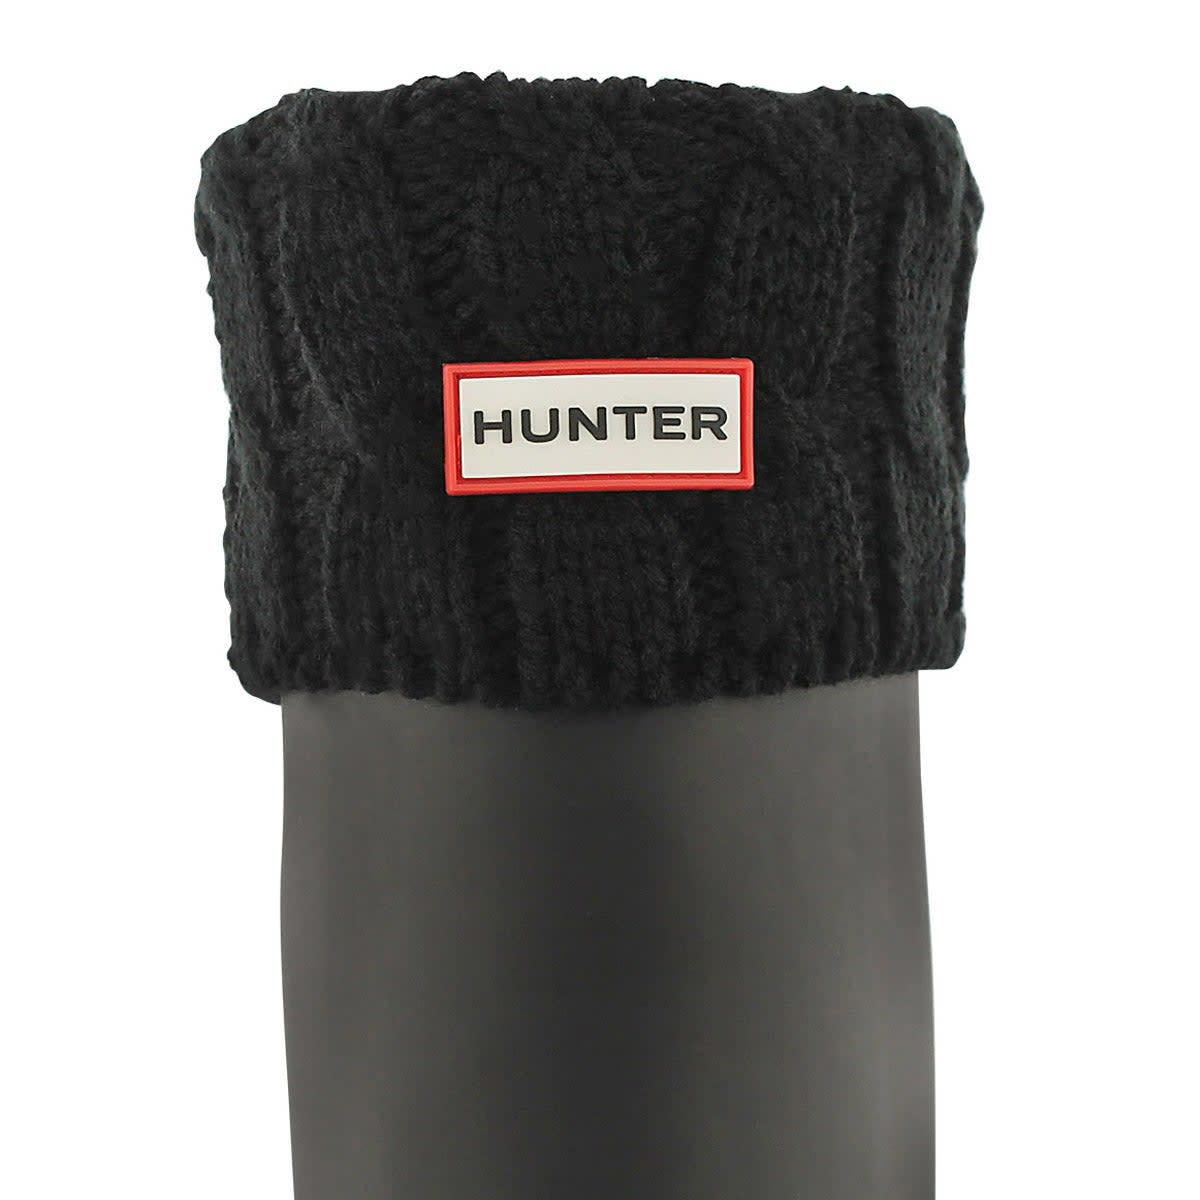 HUNTER 6 STCH CABLE SOCKS SHORT